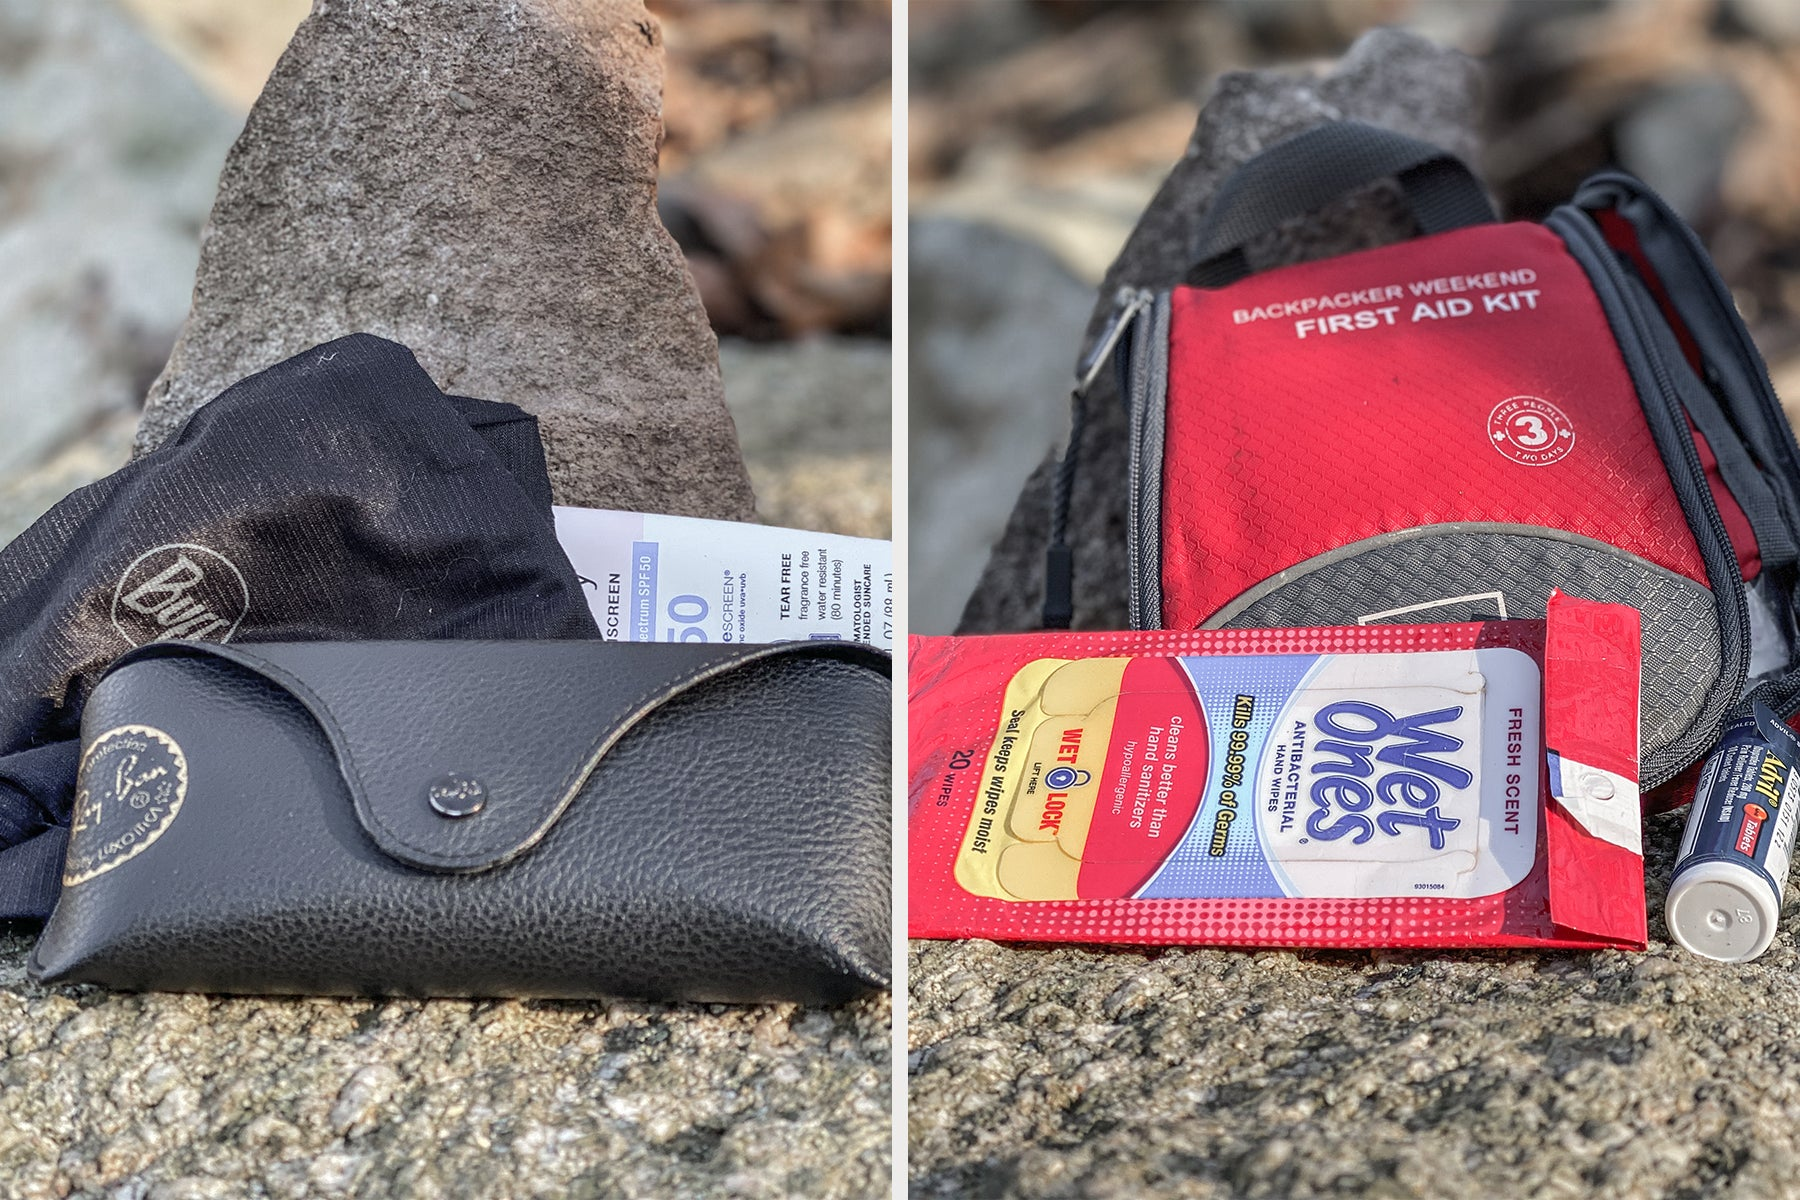 sun protection and first aid